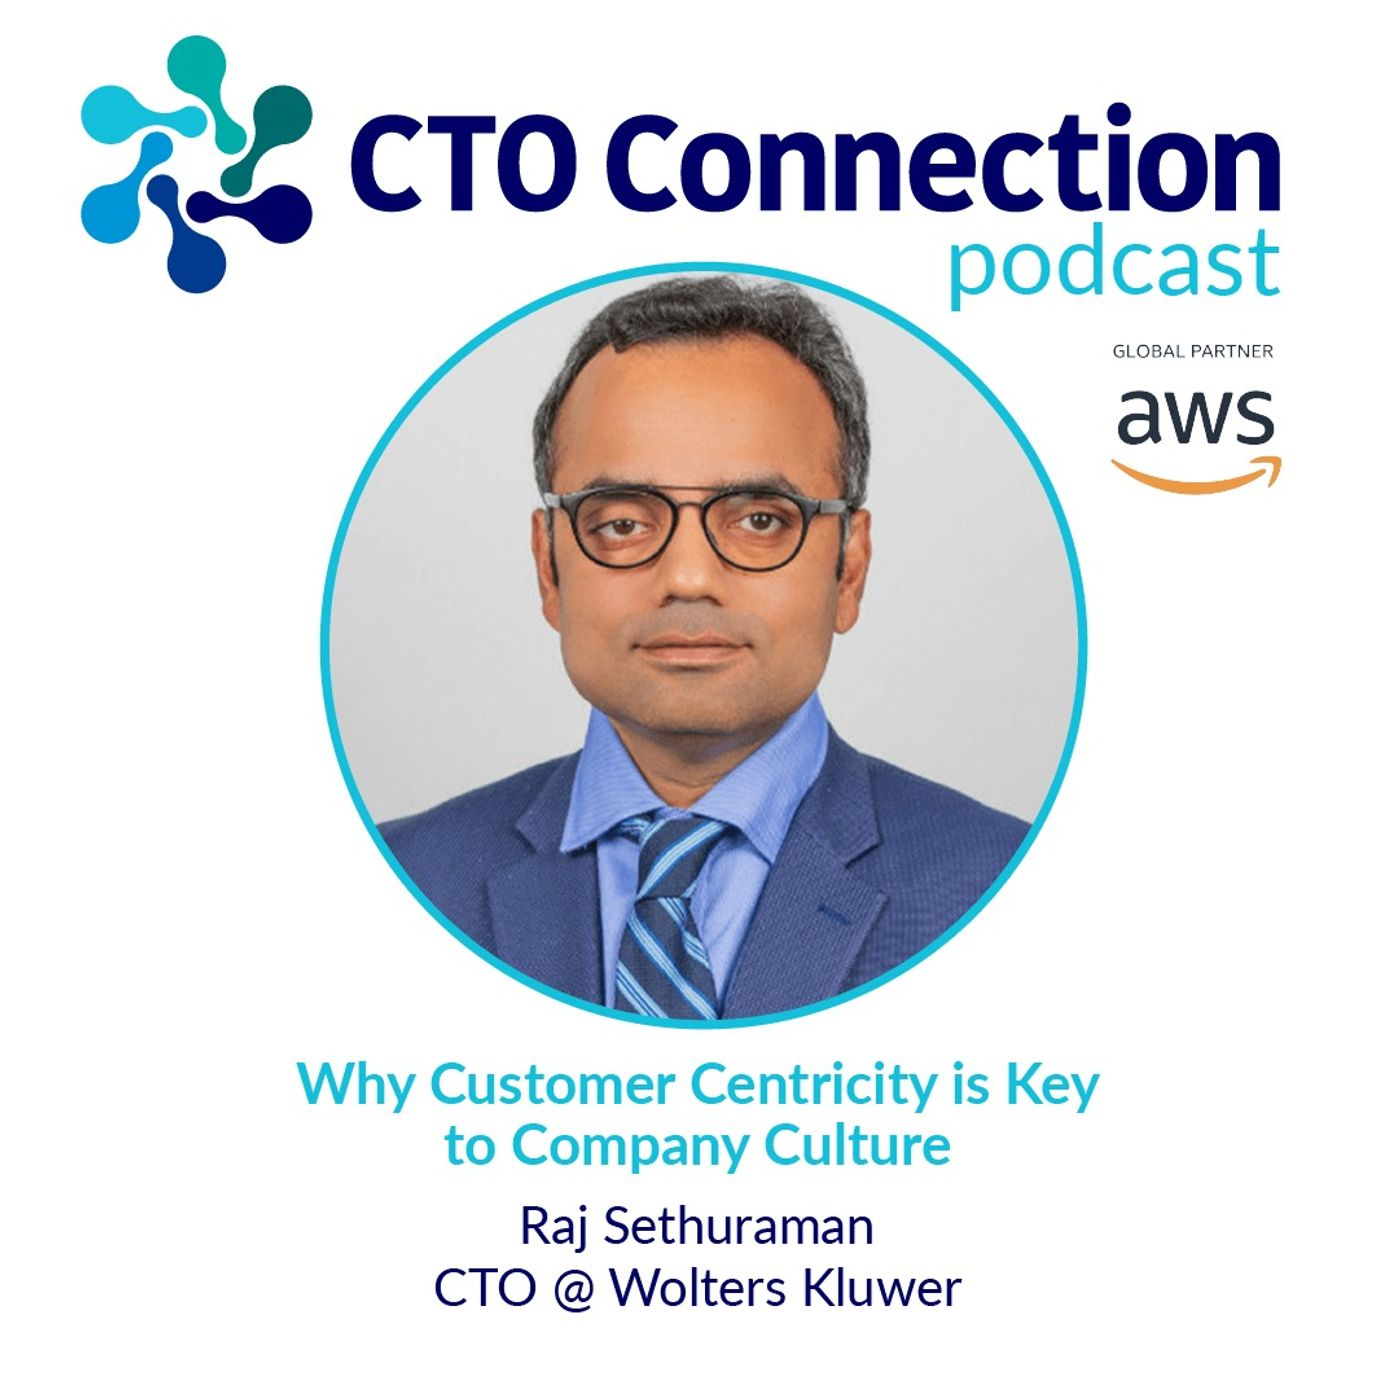 Why Customer Centricity is Key to Company Culture with Raj Sethuraman